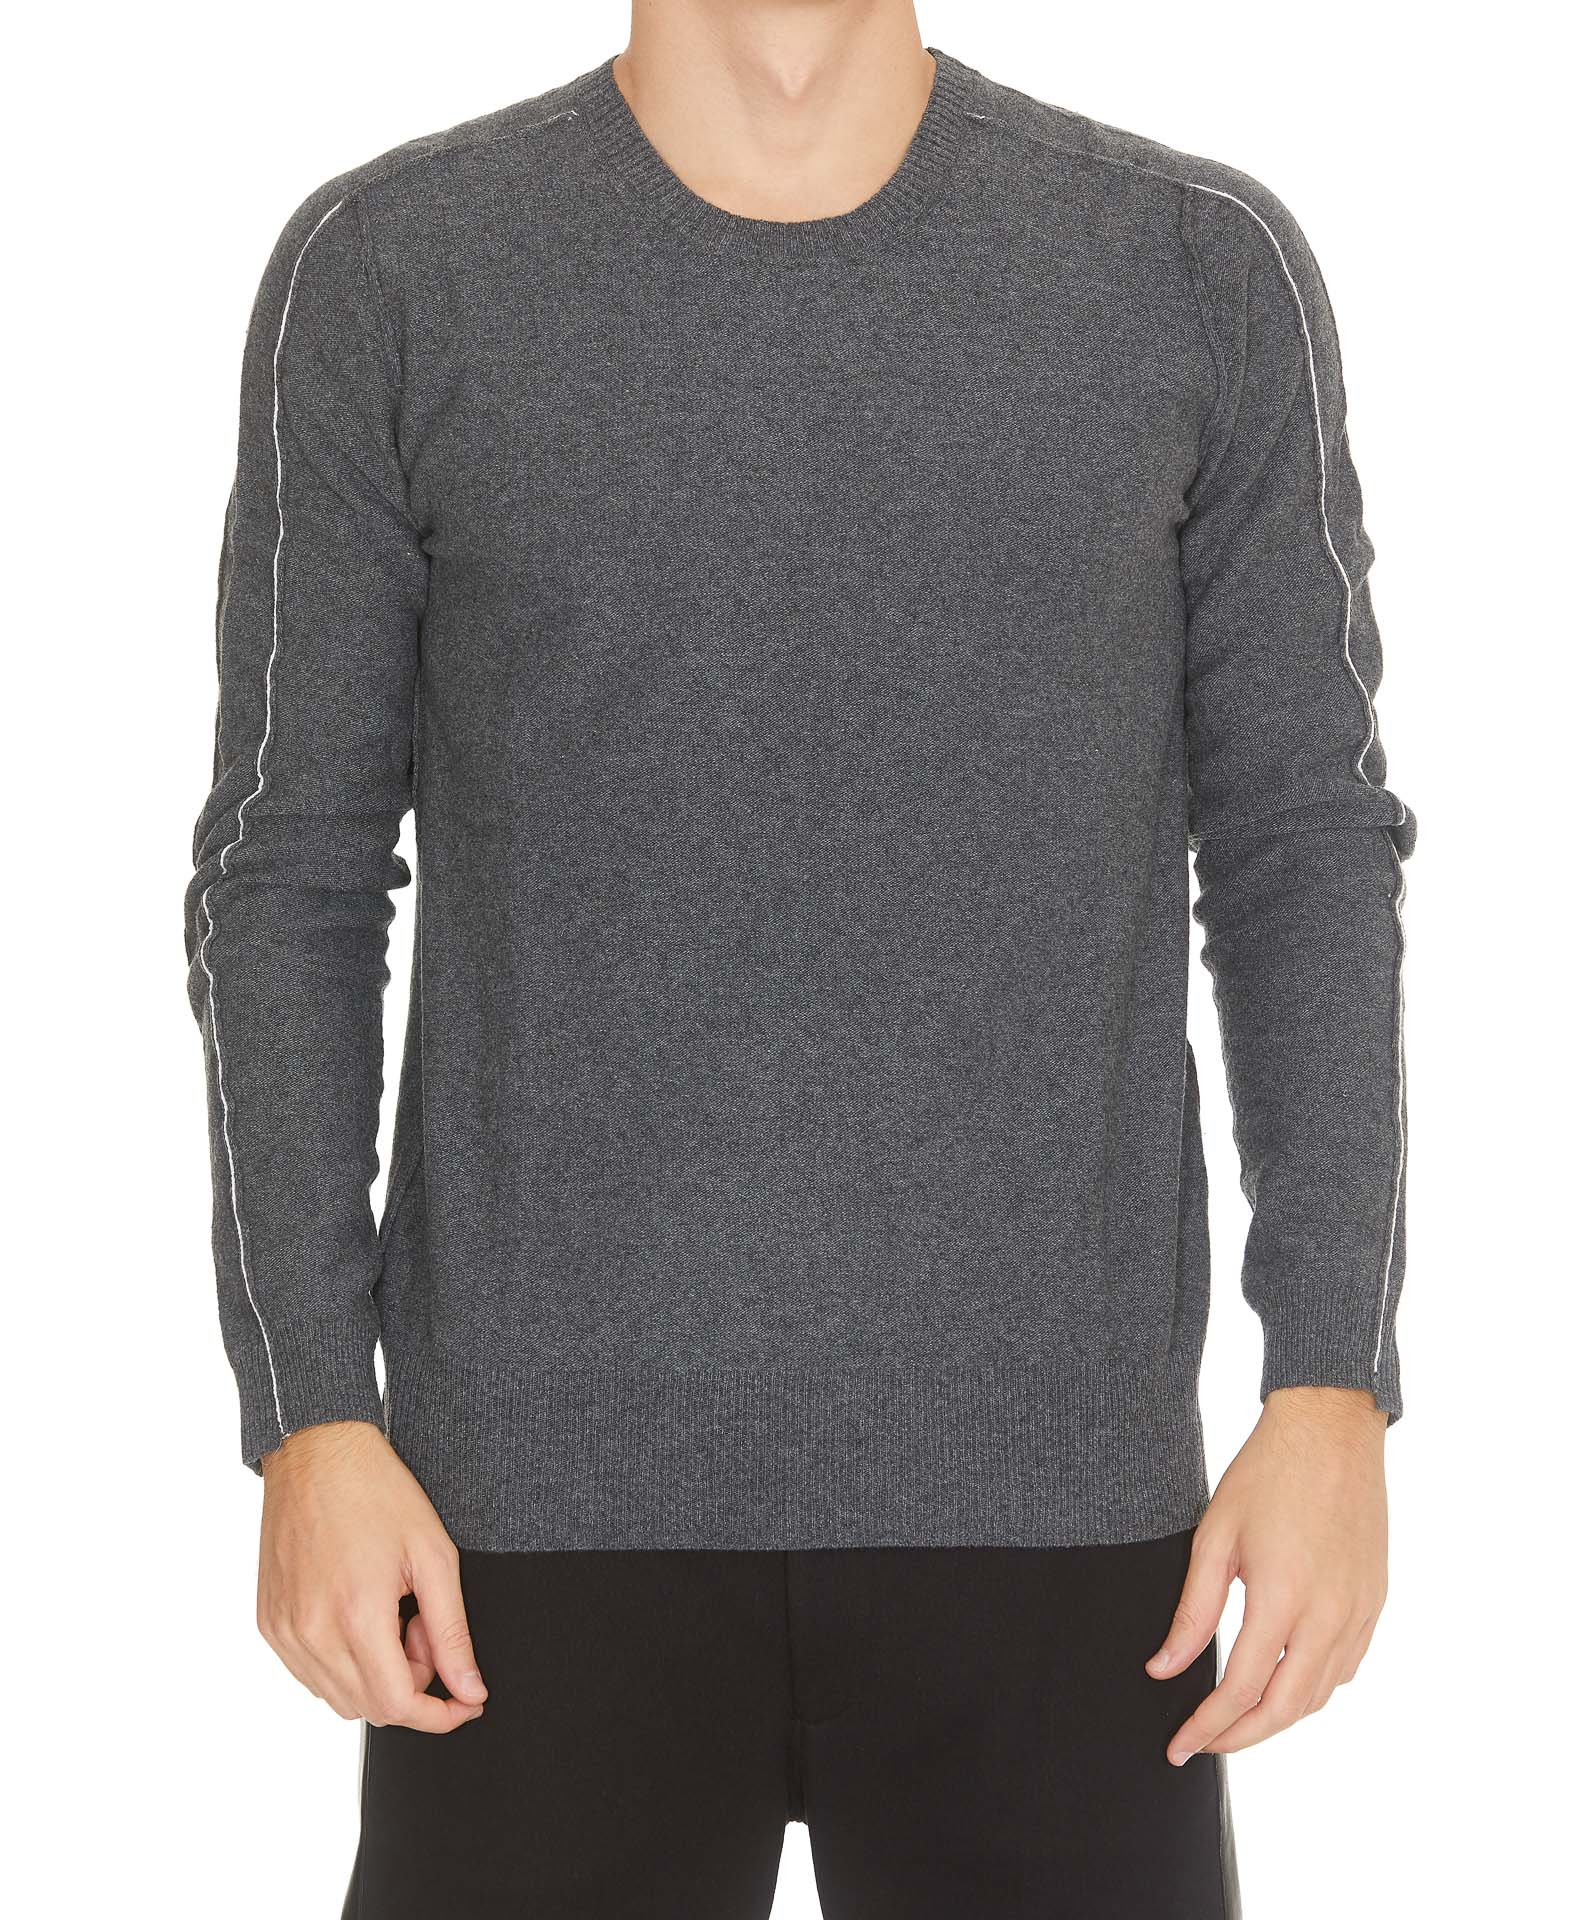 HŌSIO Sweater in Grey